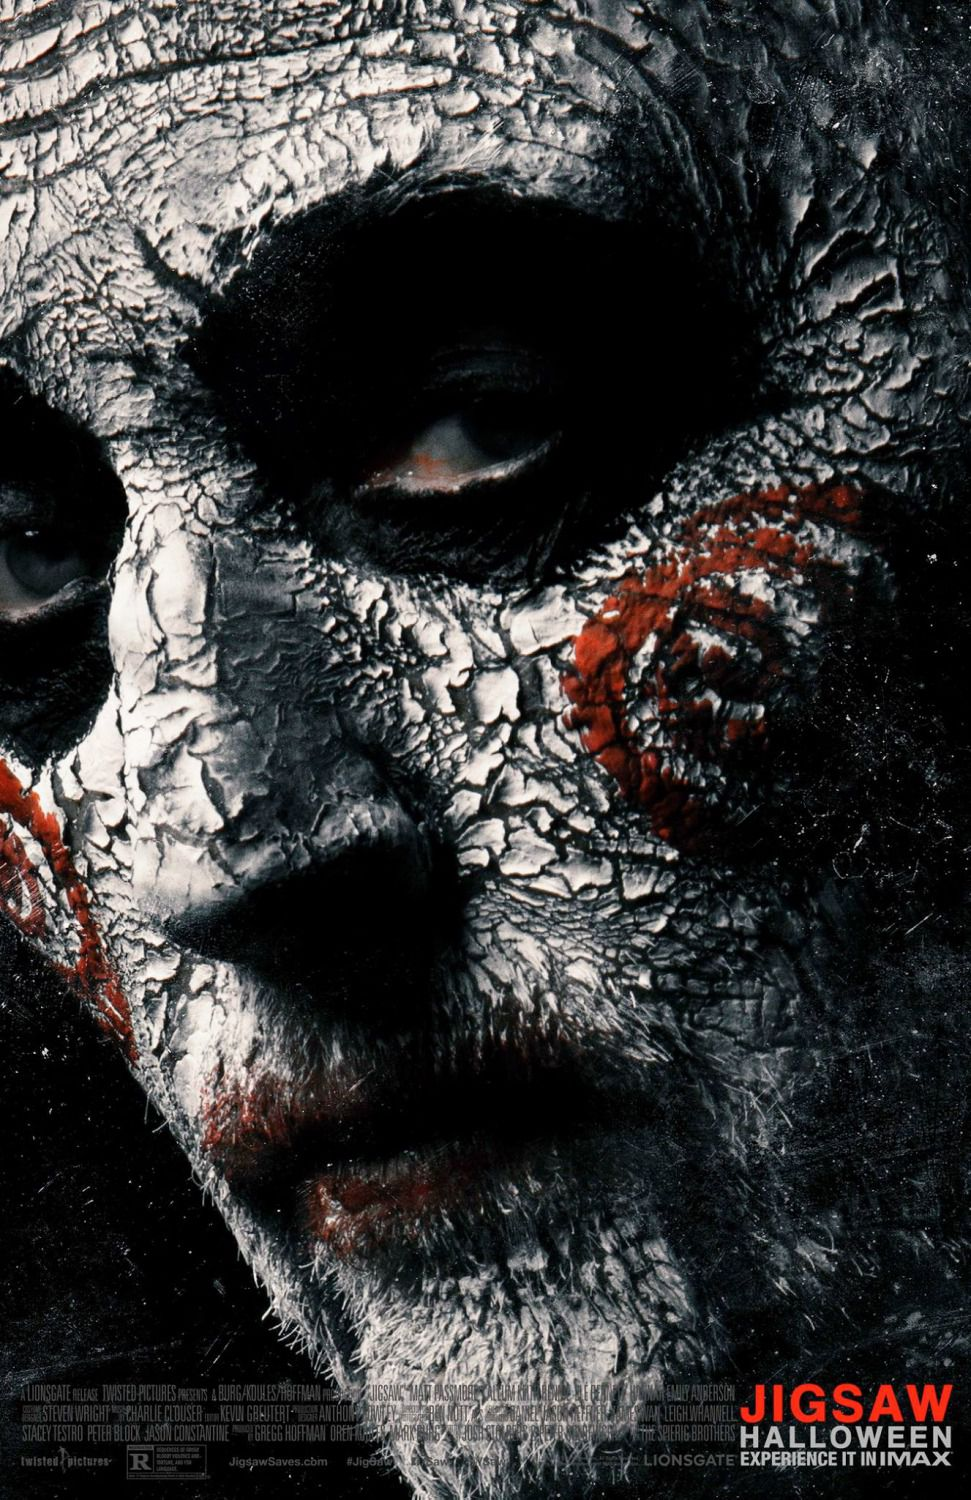 Jigsaw - horror thriller poster - face